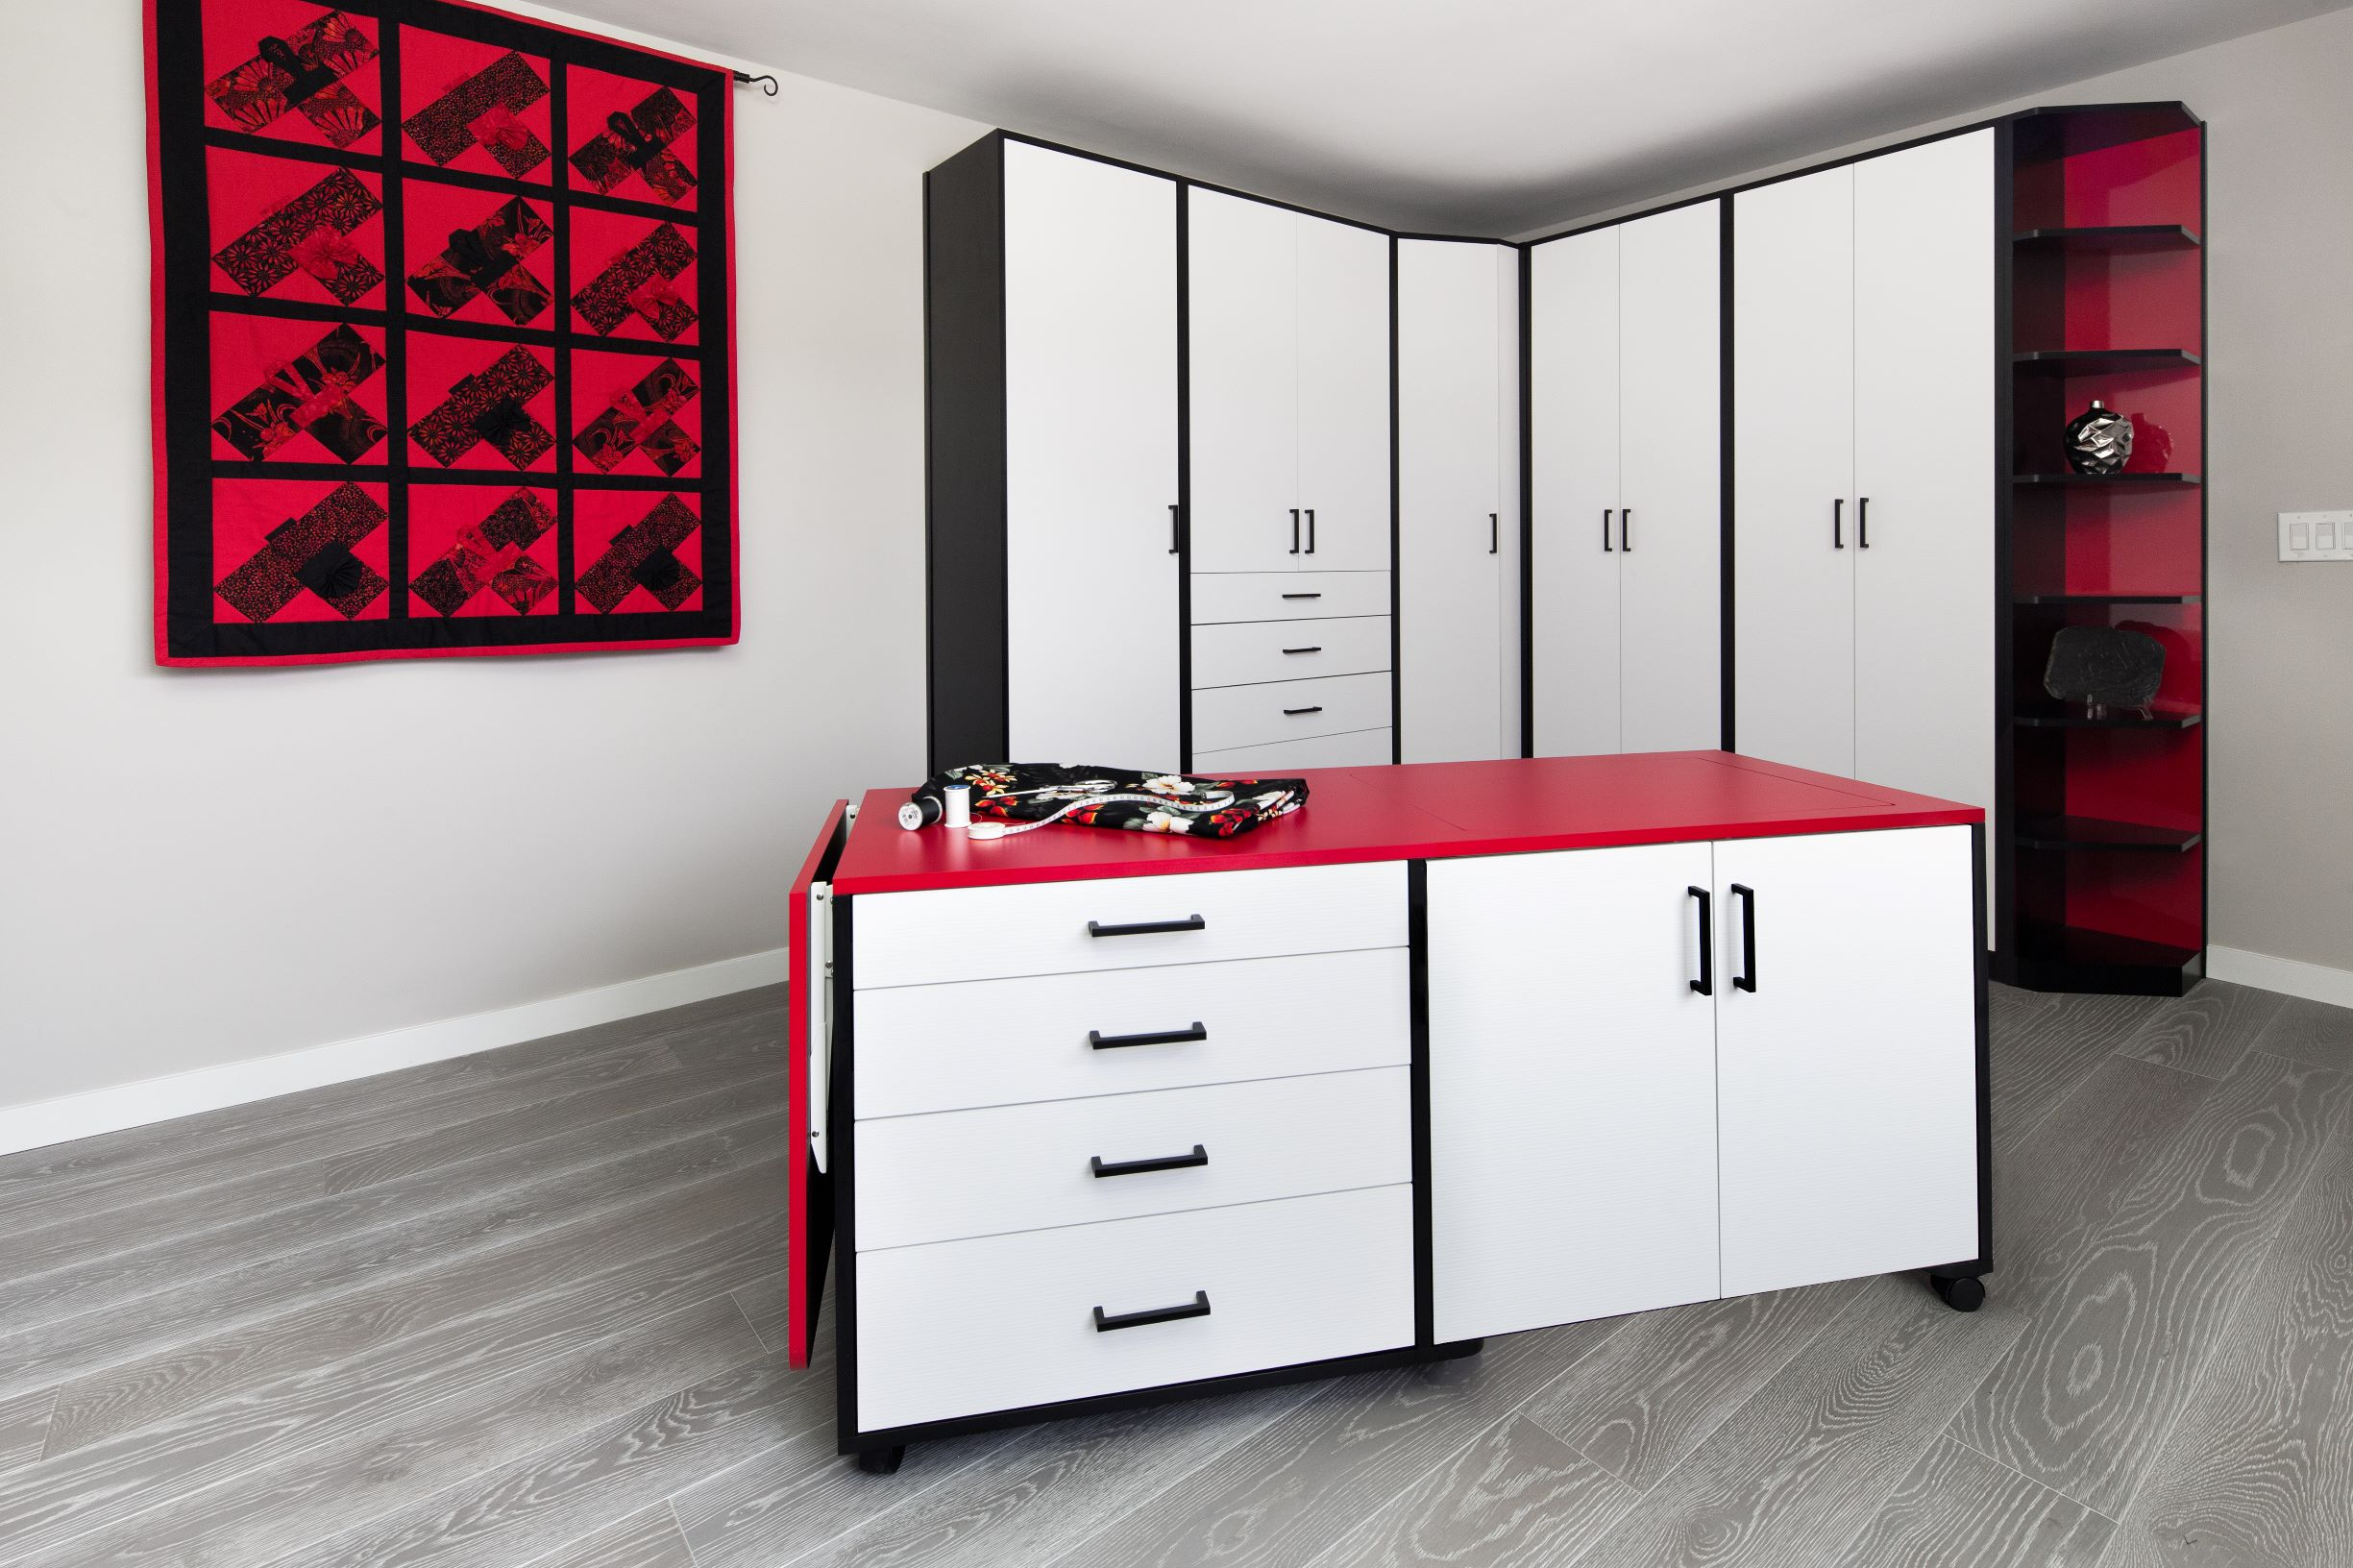 2014-12-04_Crafts-Sewing Cart_White Sculpted with Black and stop red HPL (2)-PX